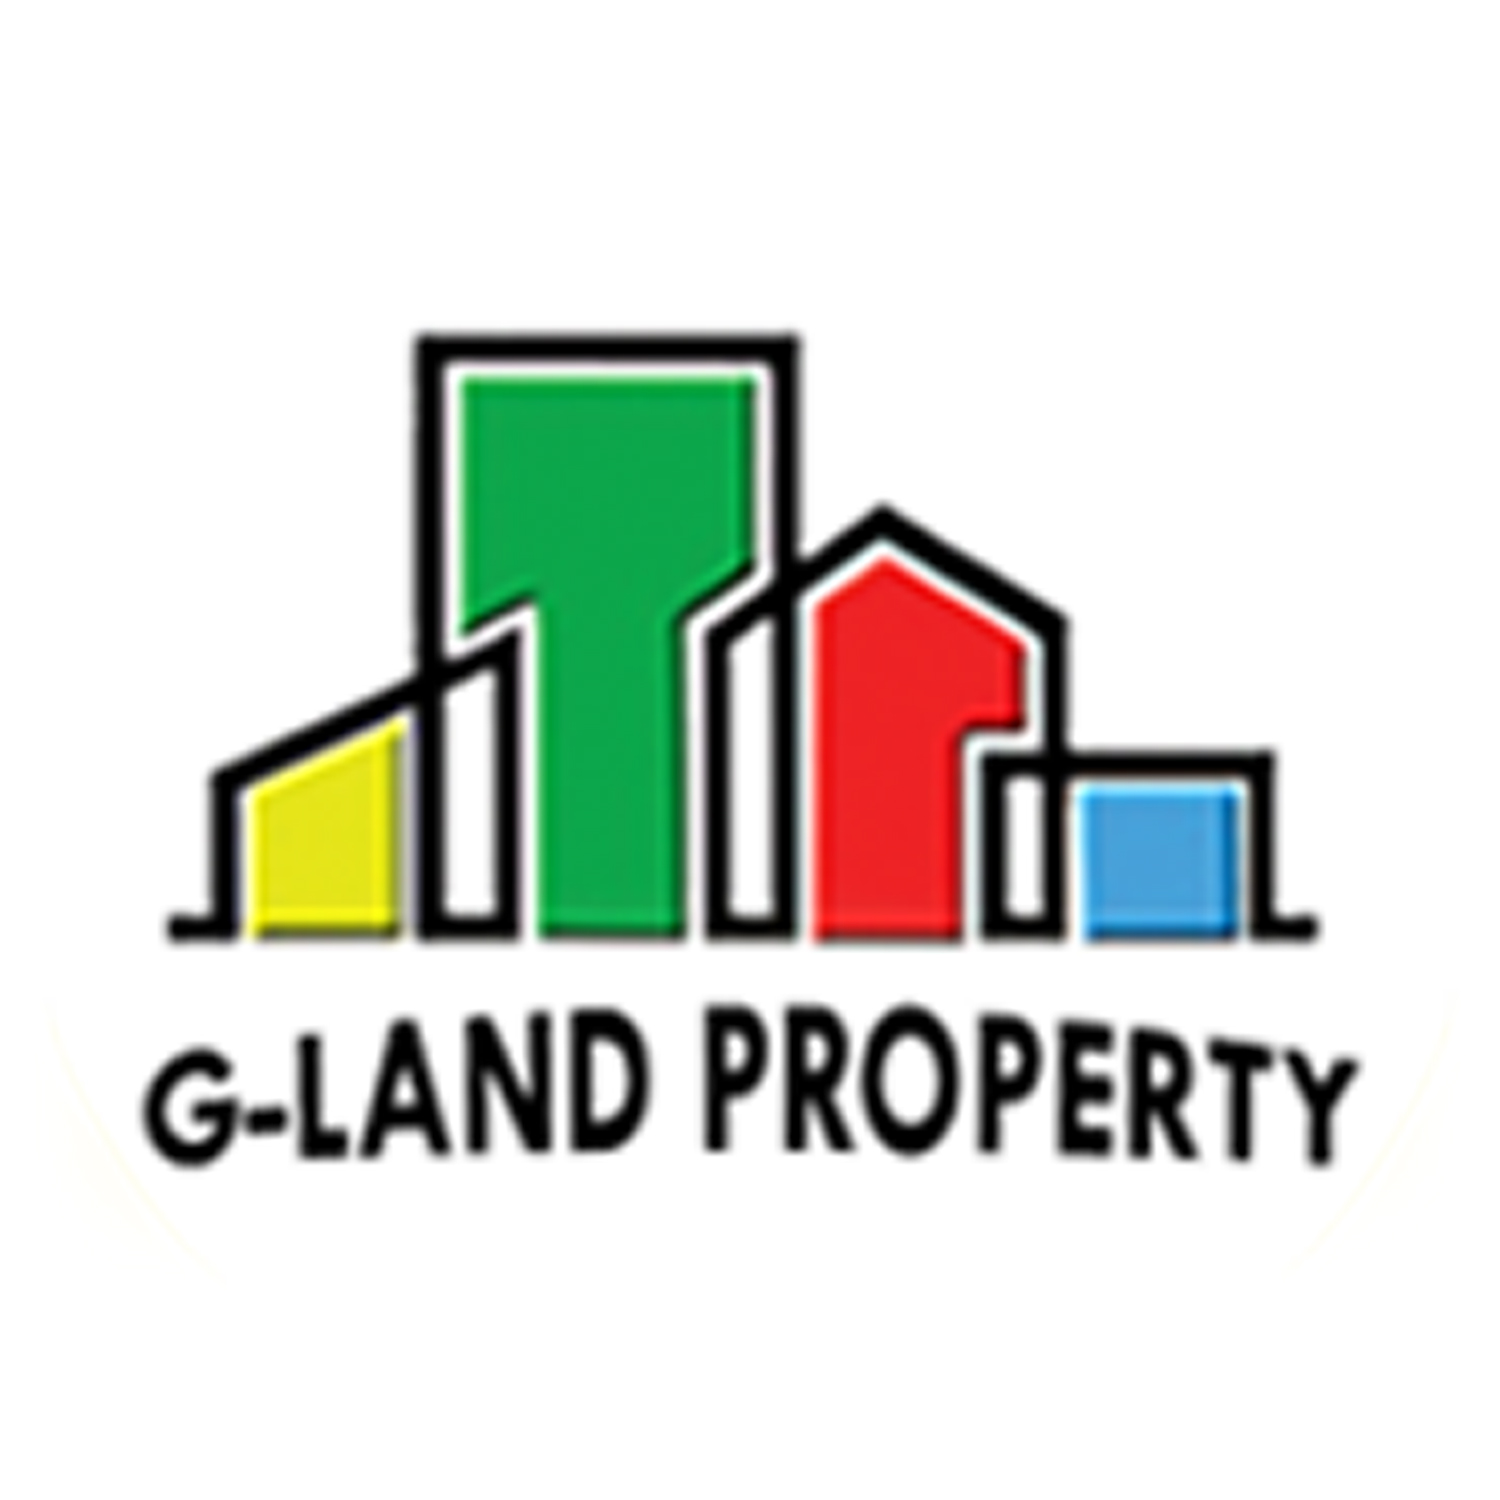 agen glandproperty